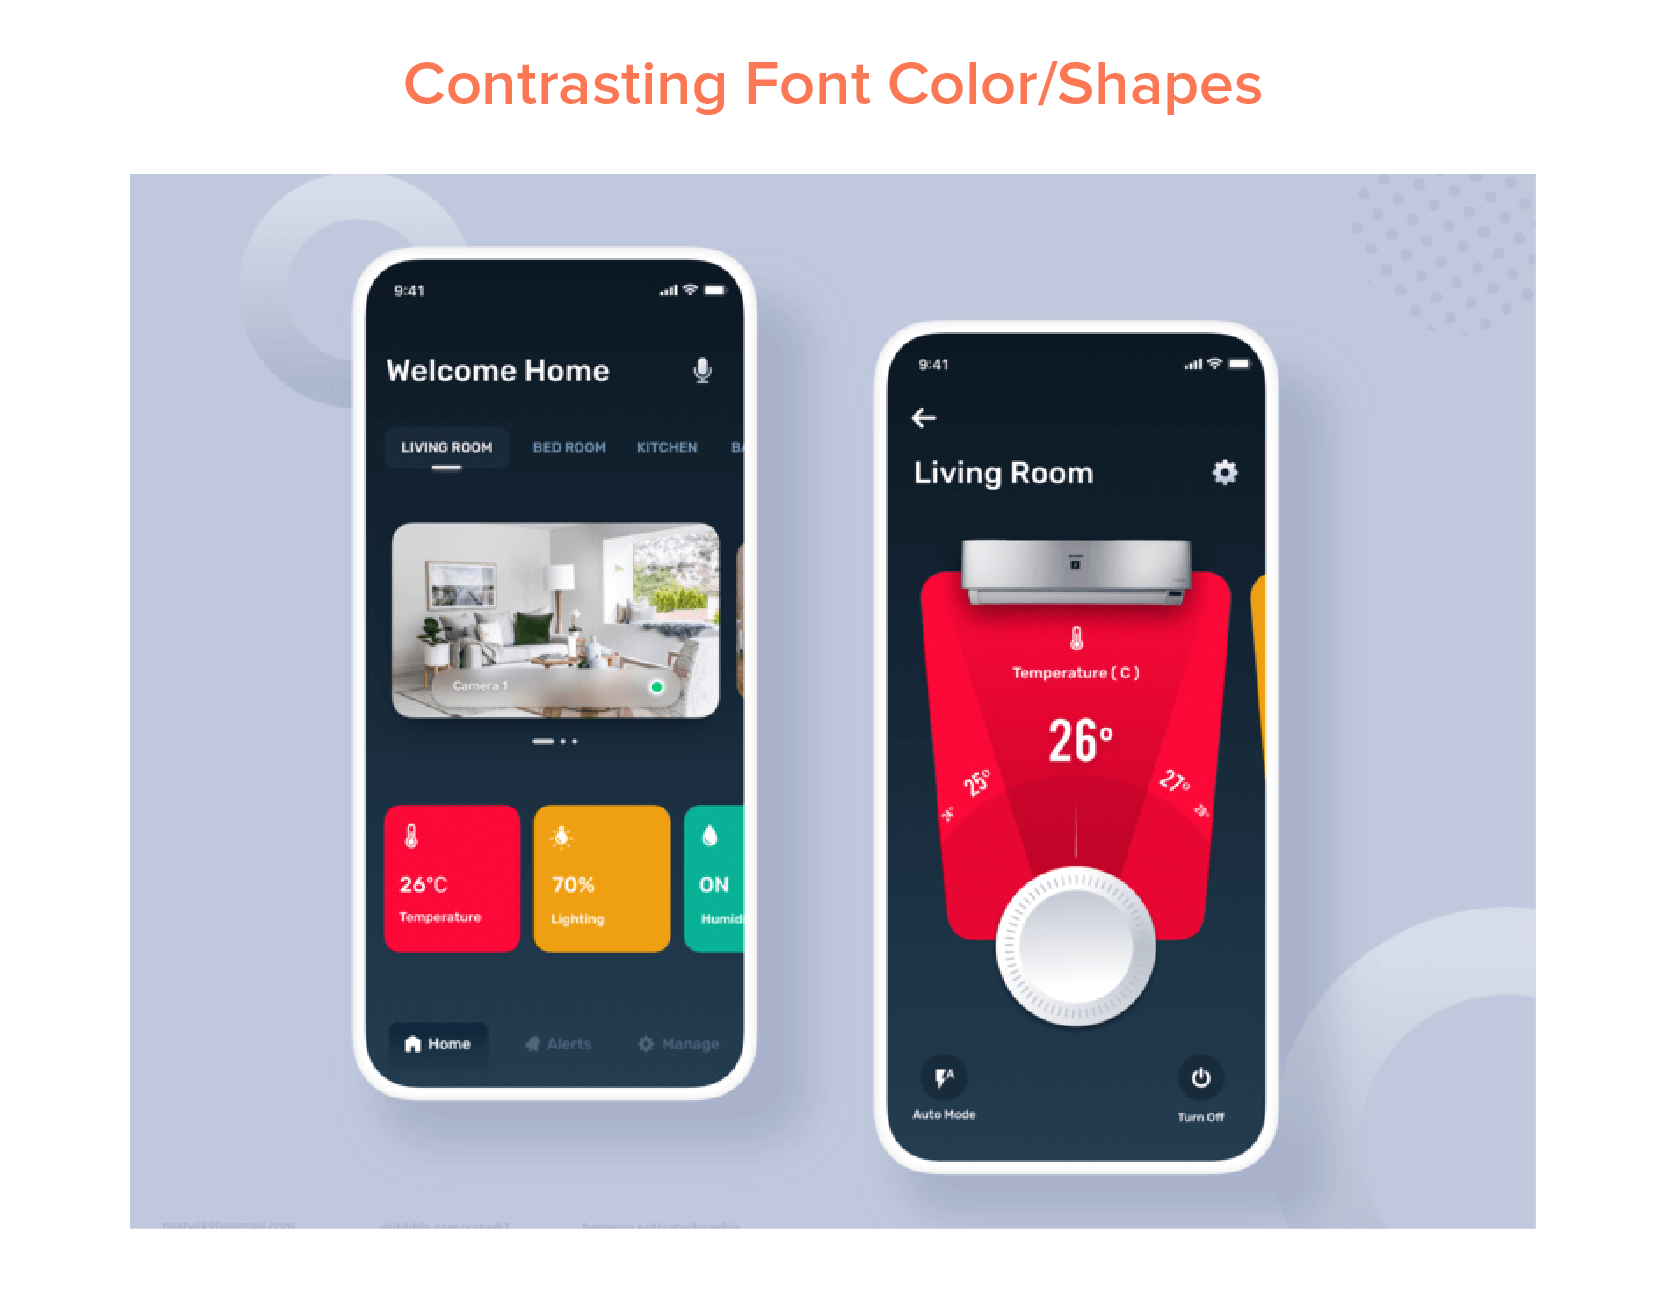 Contrasting-Font-Color-and-Shapes